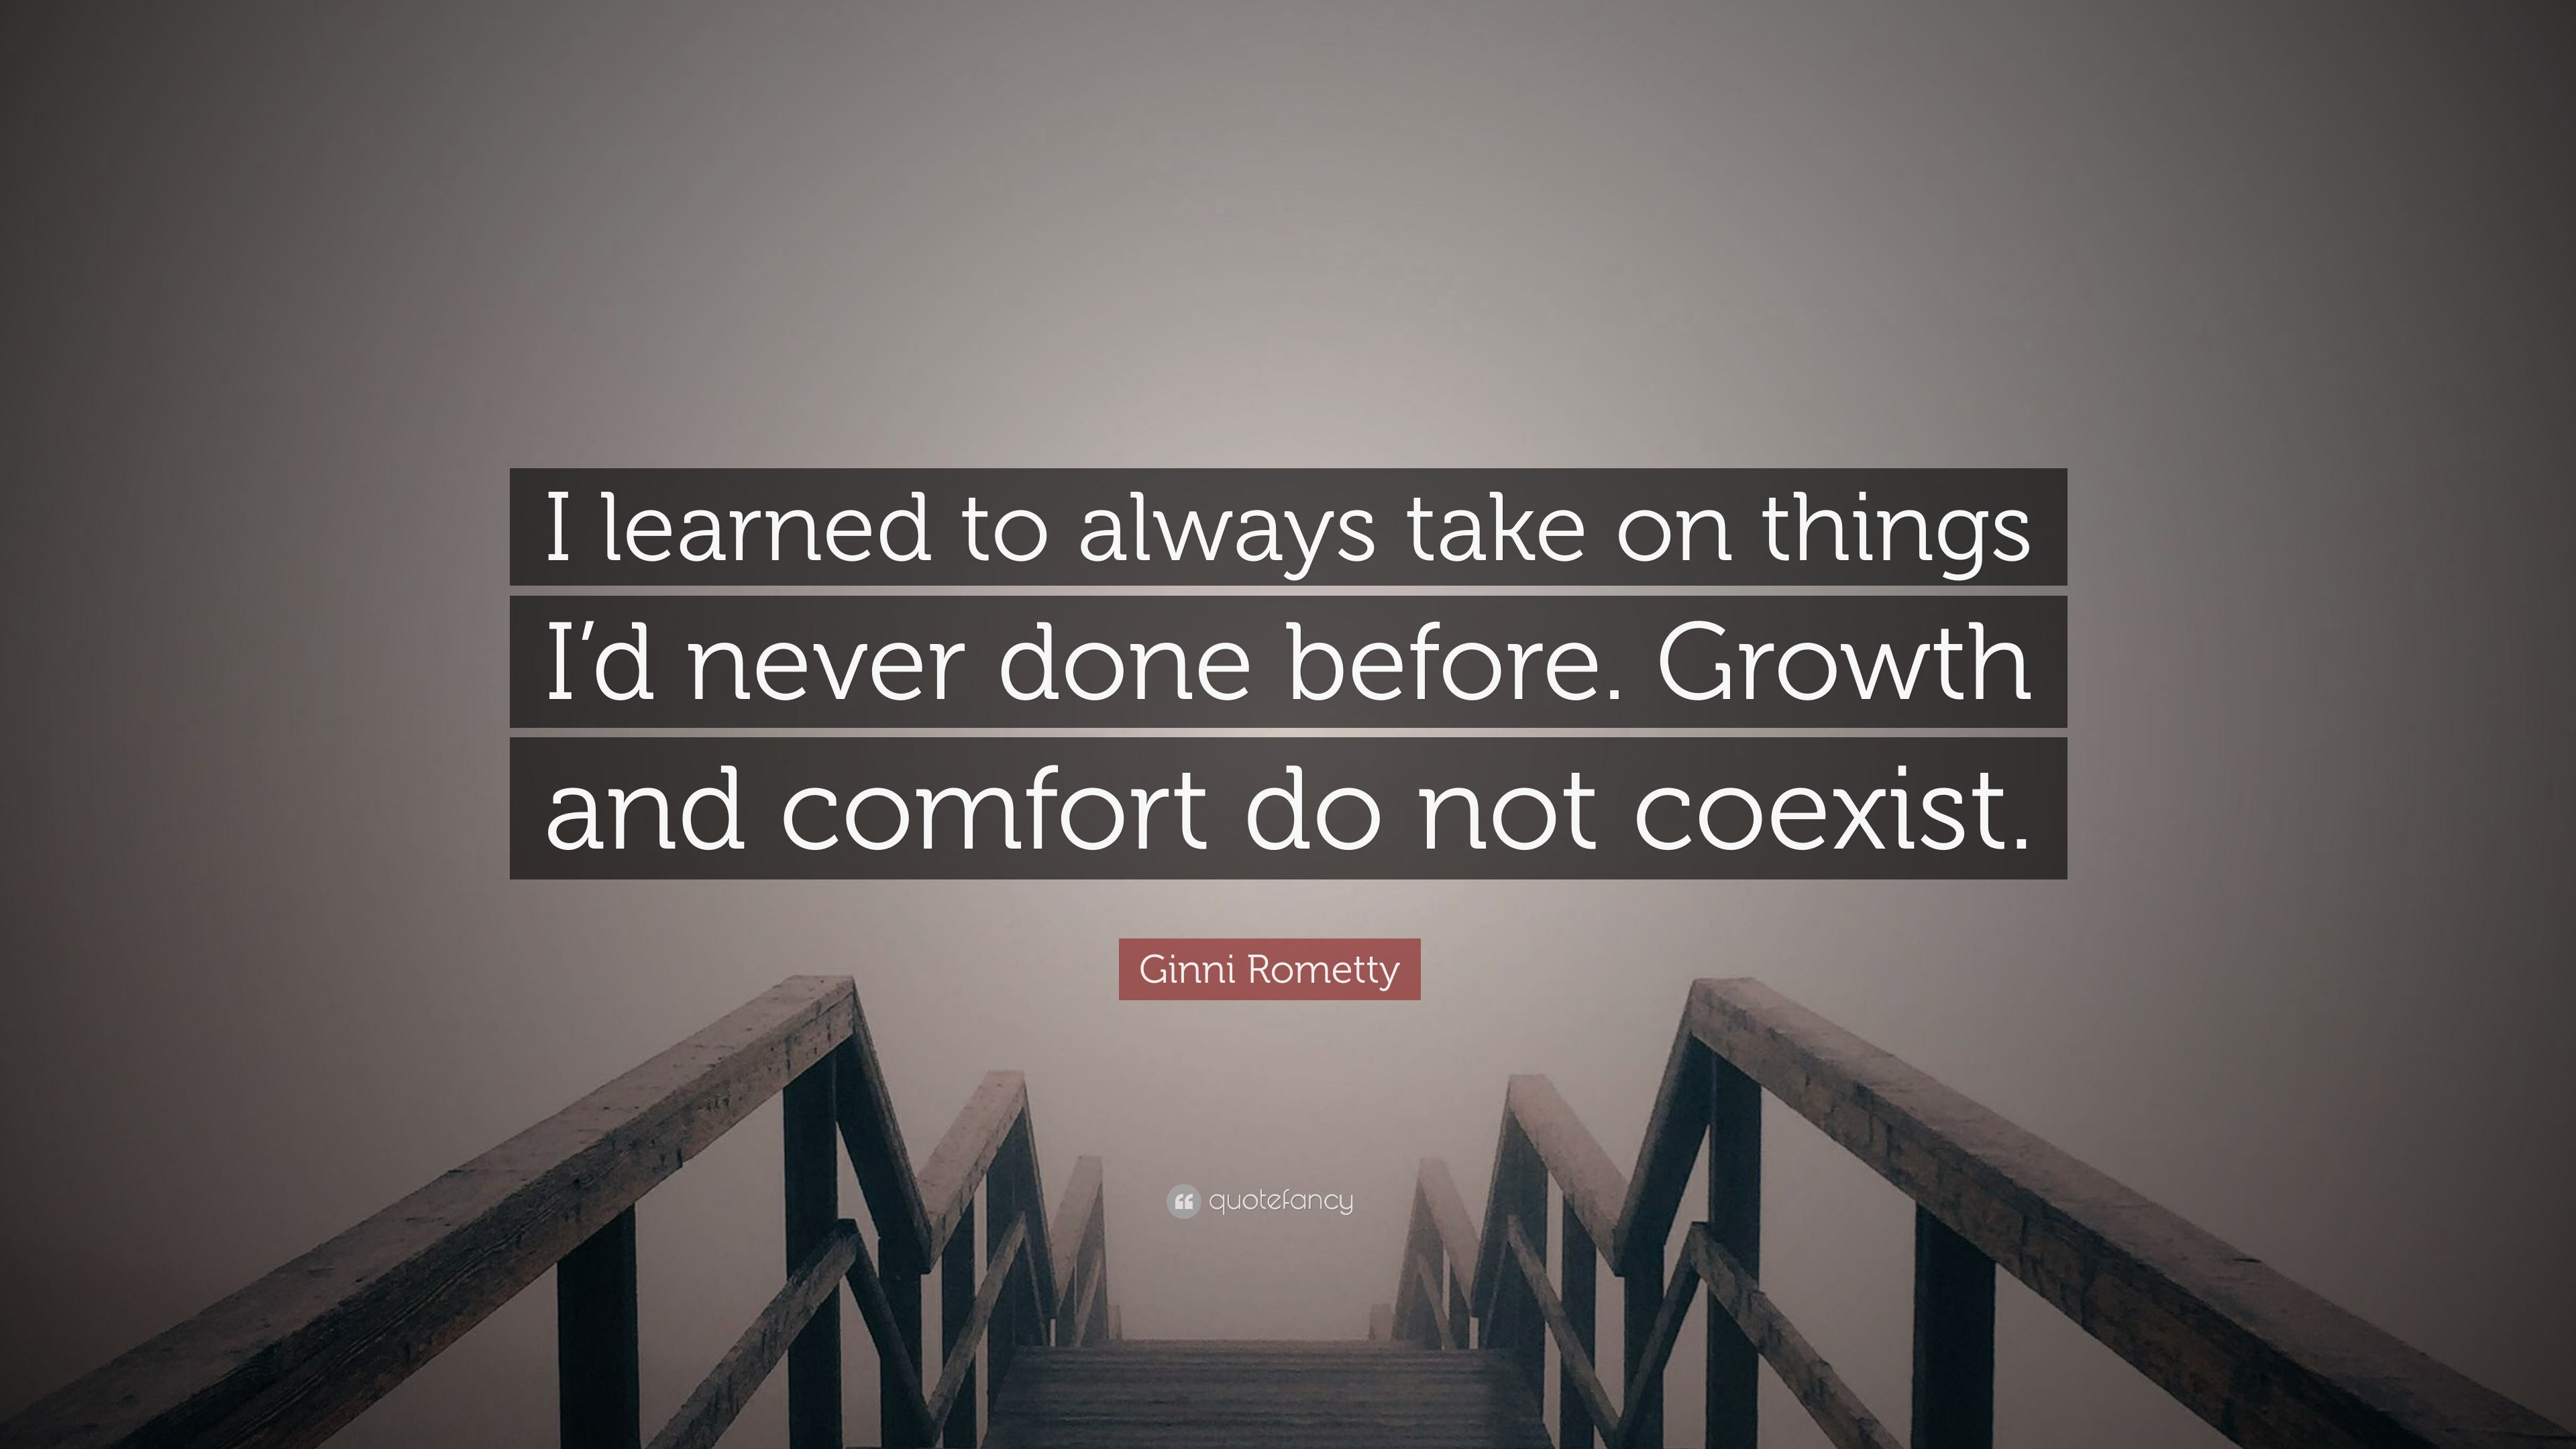 1823516-Ginni-Rometty-Quote-I-learned-to-always-take-on-things-I-d-never